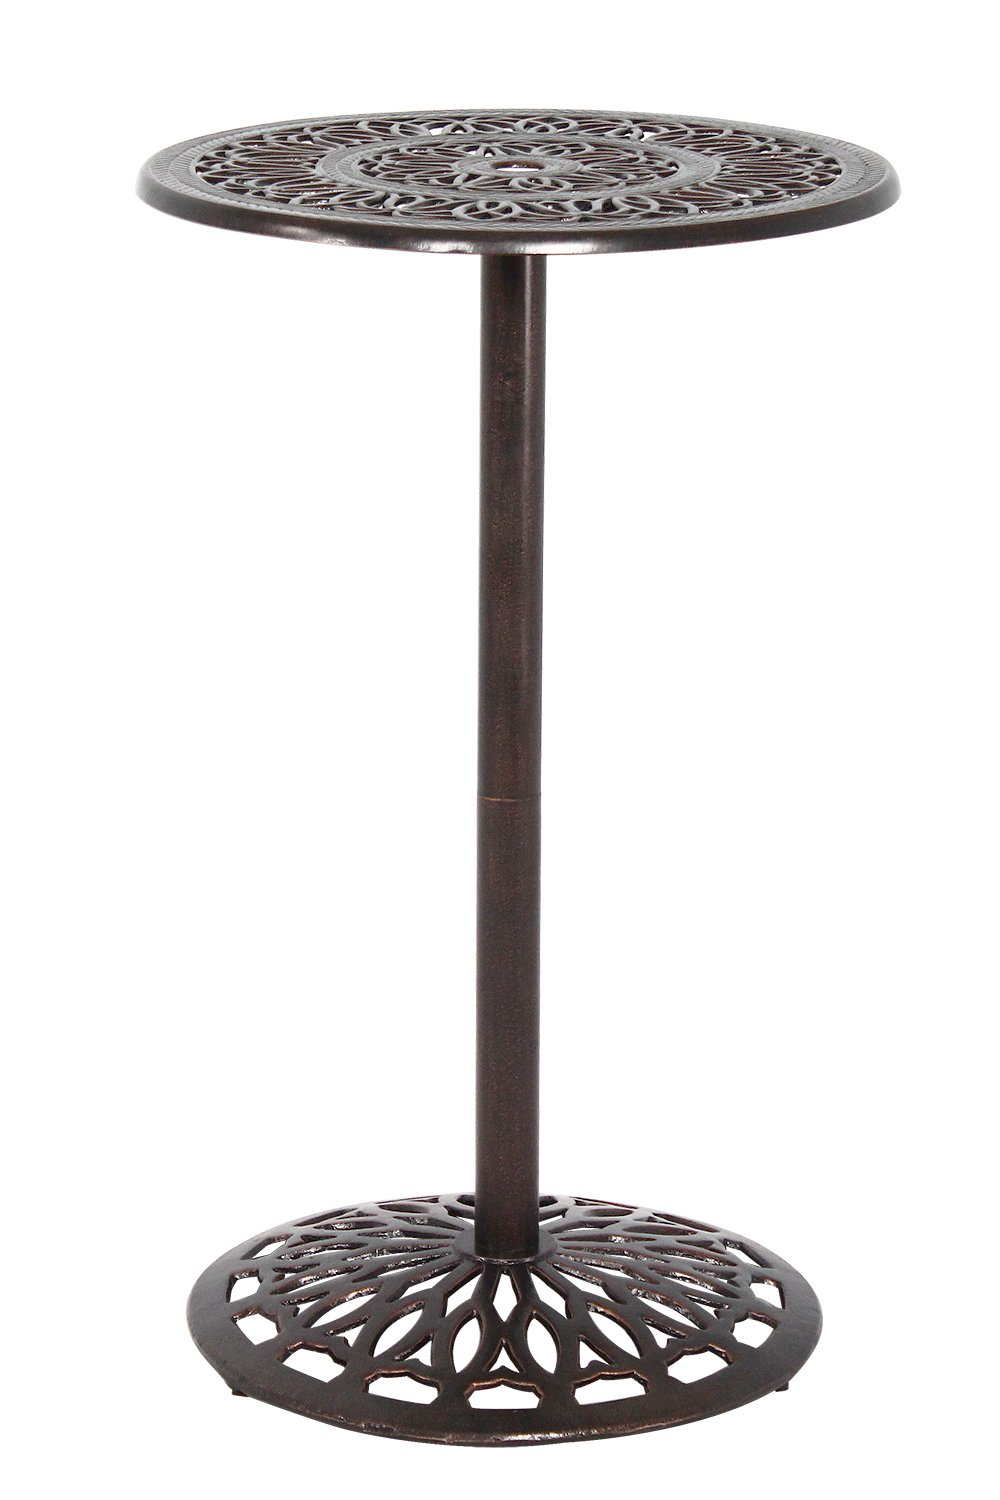 HOMEFUN Outdoor Bar Height Table Bistro Pub Table Cast Aluminum High Round Top Patio Bar Table (Stools not Included)